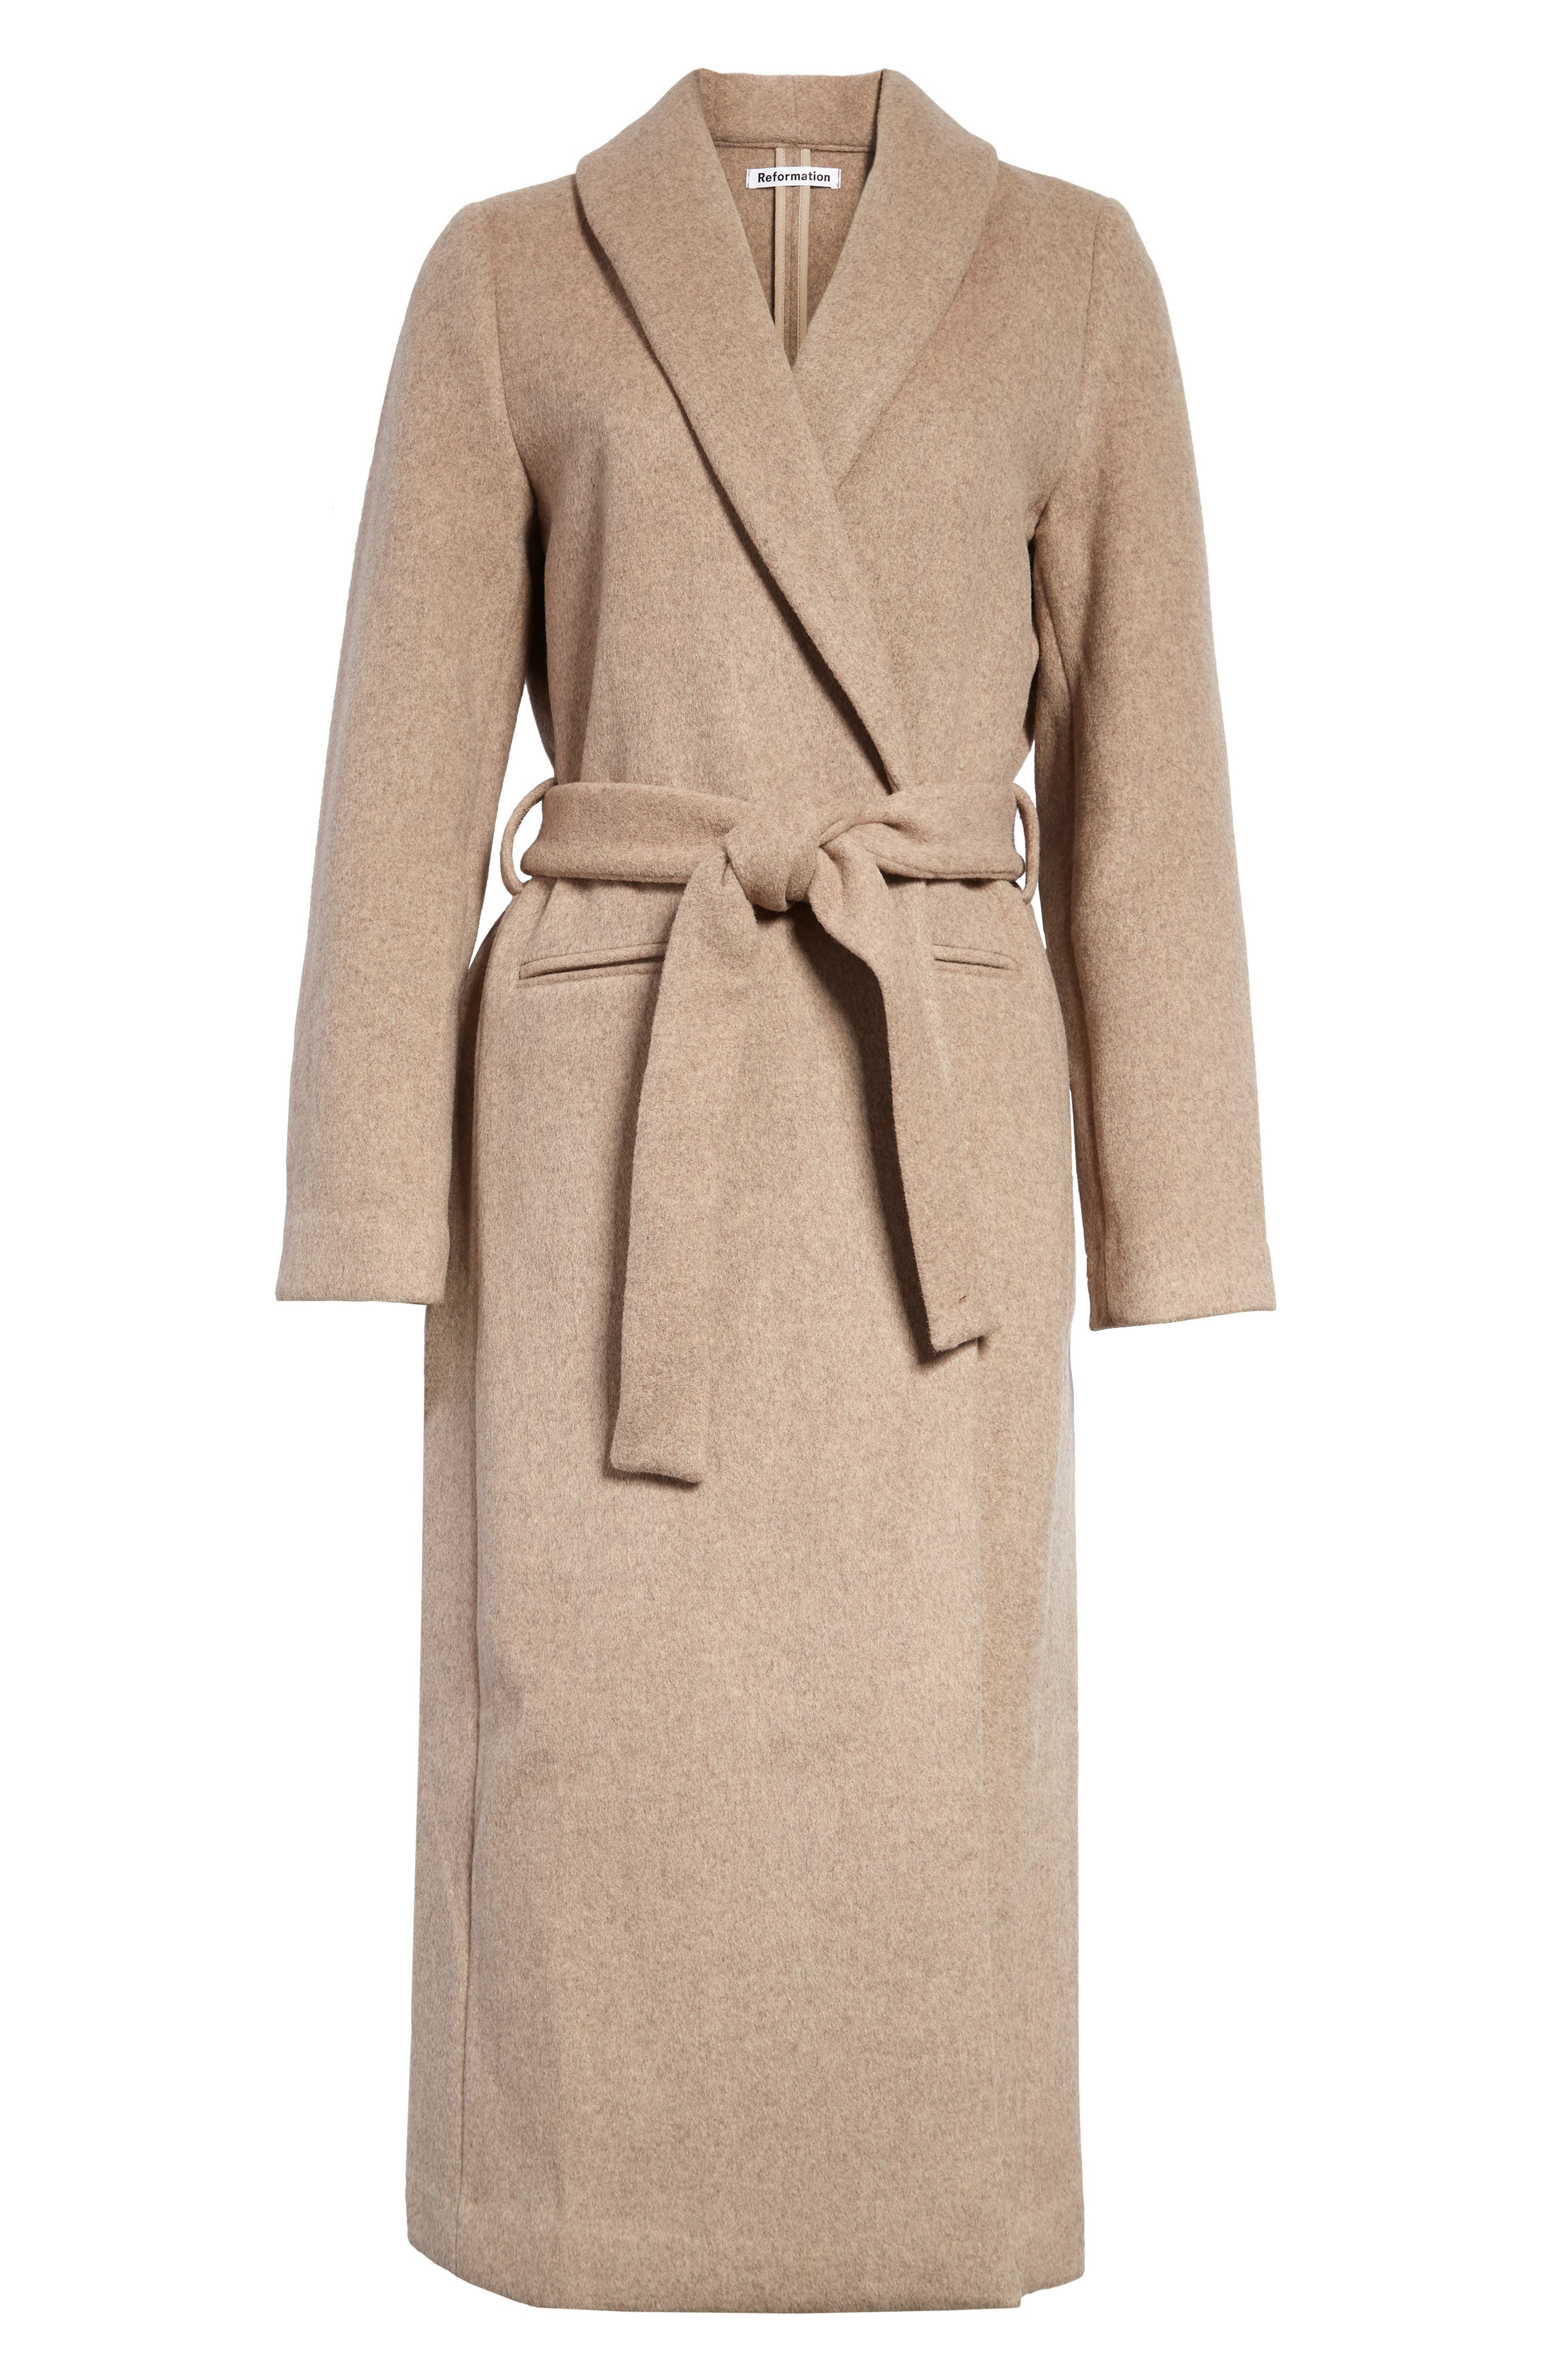 1930s Outfit Ideas for Women Womens Reformation Greenwich Coat Size Medium - Beige $288.00 AT vintagedancer.com